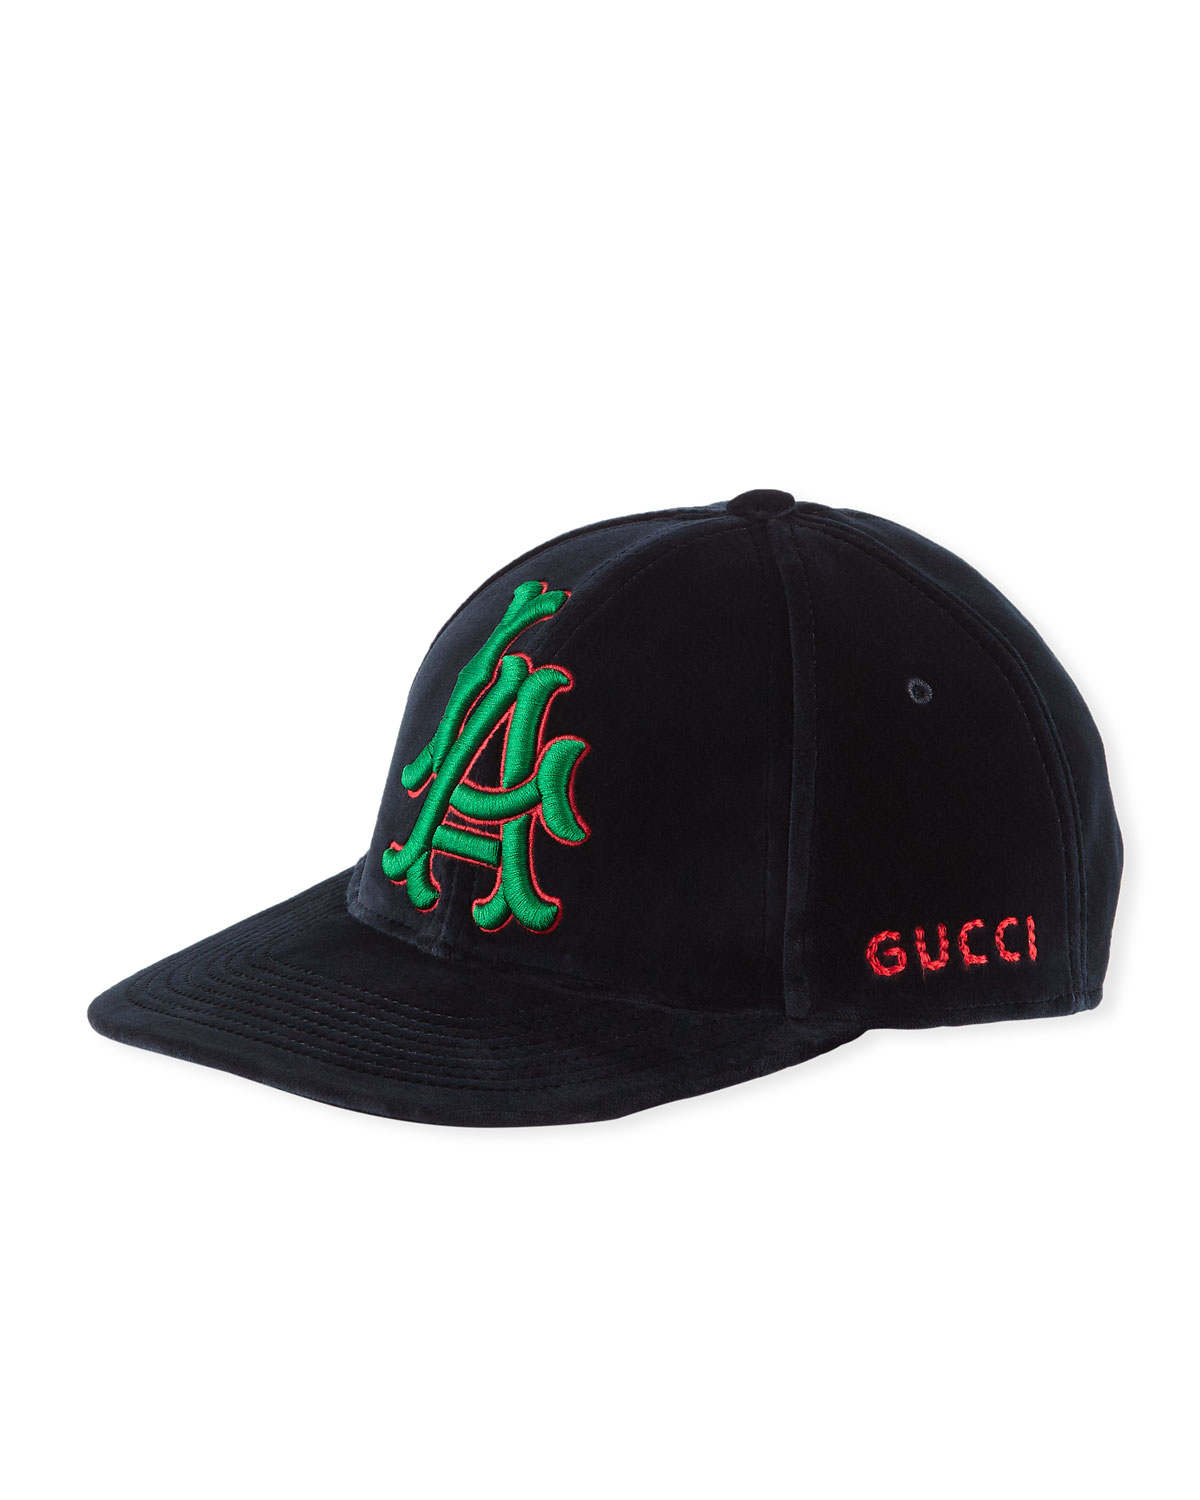 94813af9933ce Gucci LA Angeles MLB Velvet Baseball Hat